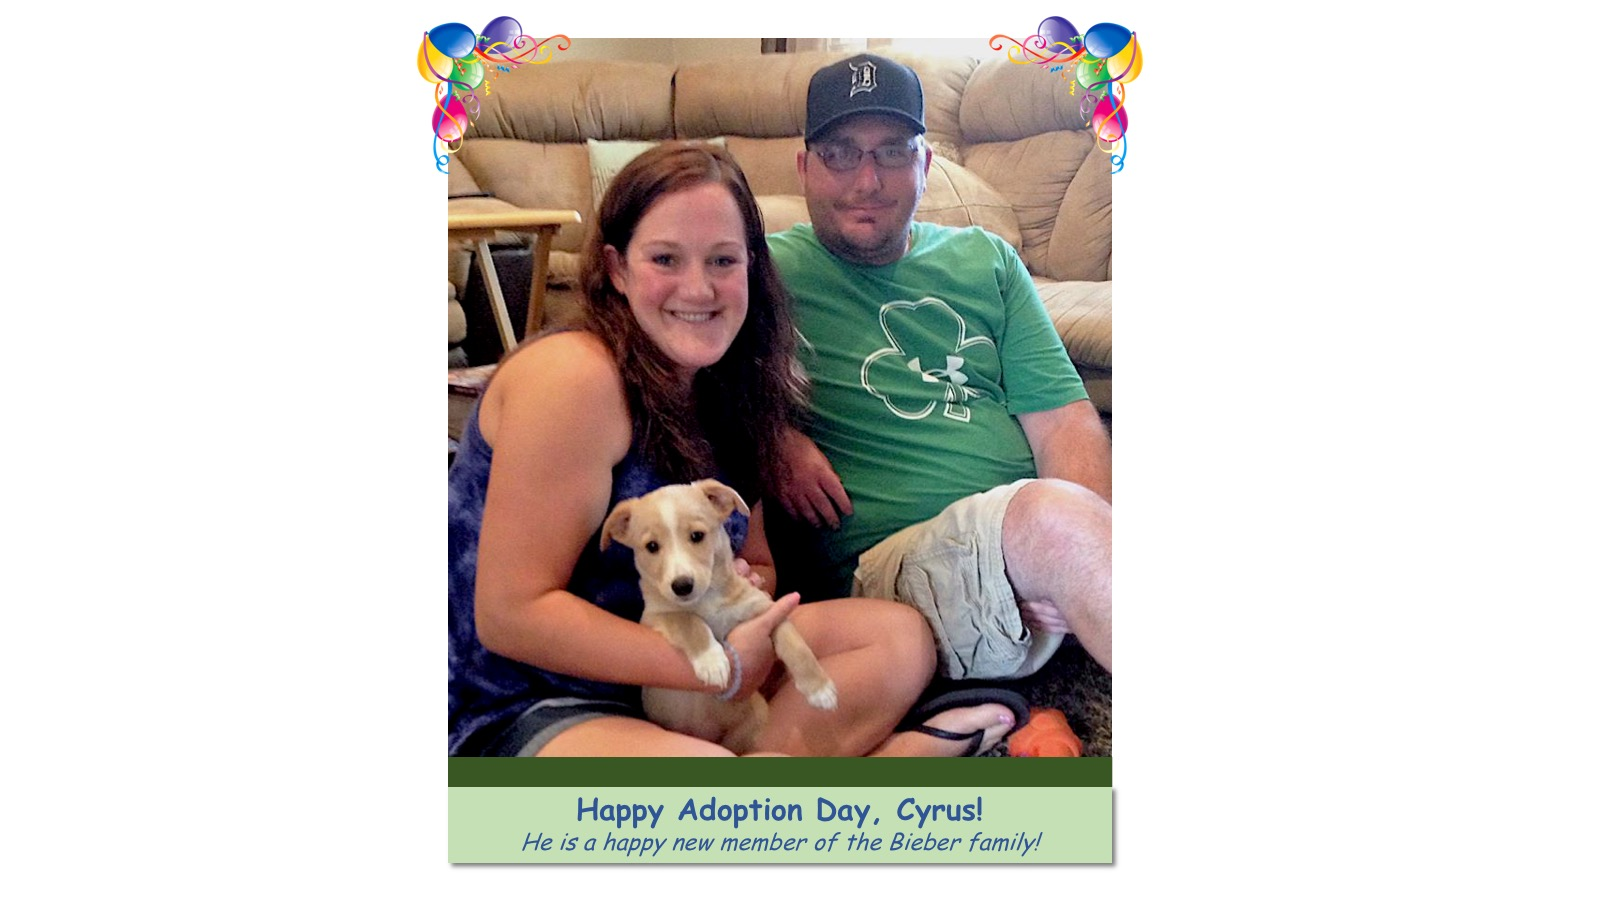 Cyrus_Adoption_Photo_2018.jpg